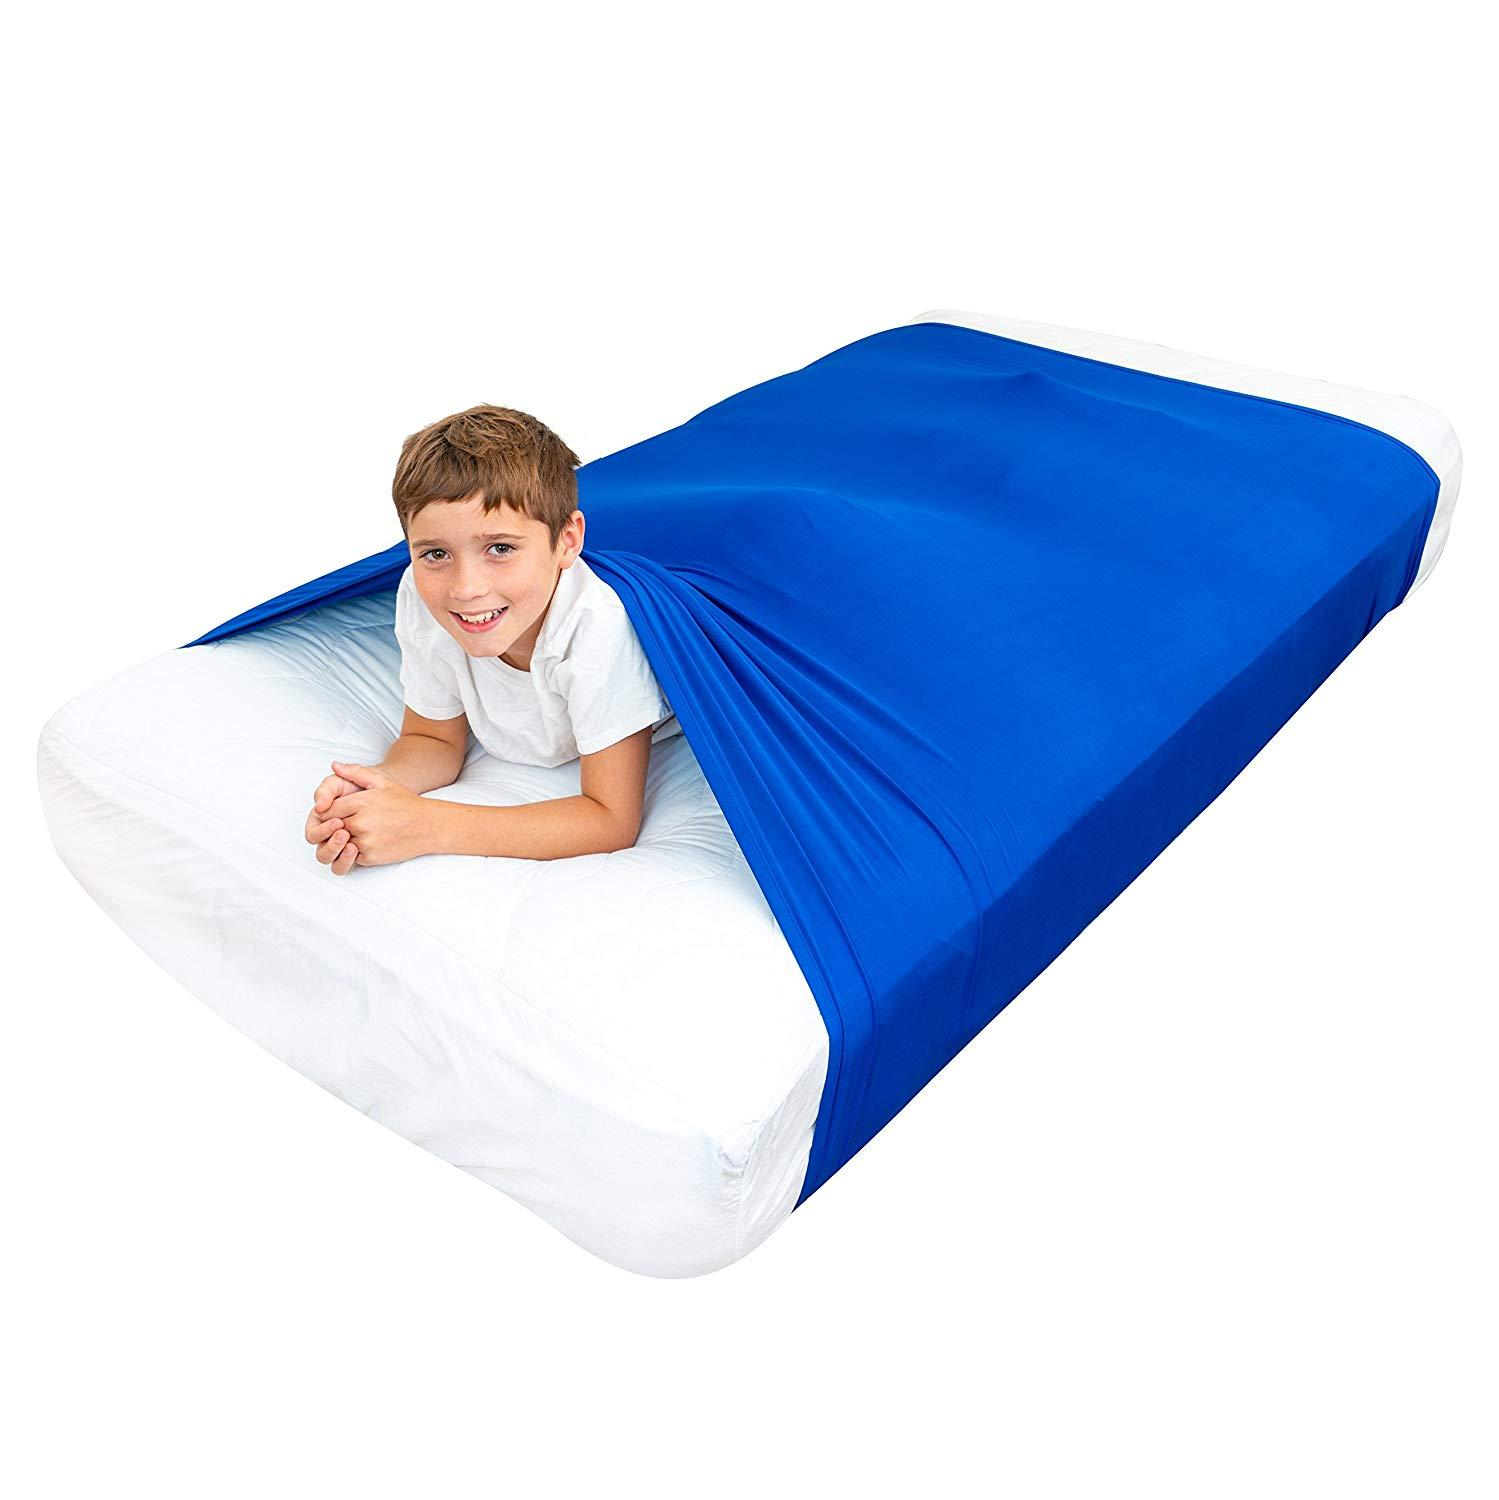 Sensory Bed Sheet For Kids Compression Alternative To Weighted Blankets Breathable Sack For Boys, Girls - Safe  Calming Relief